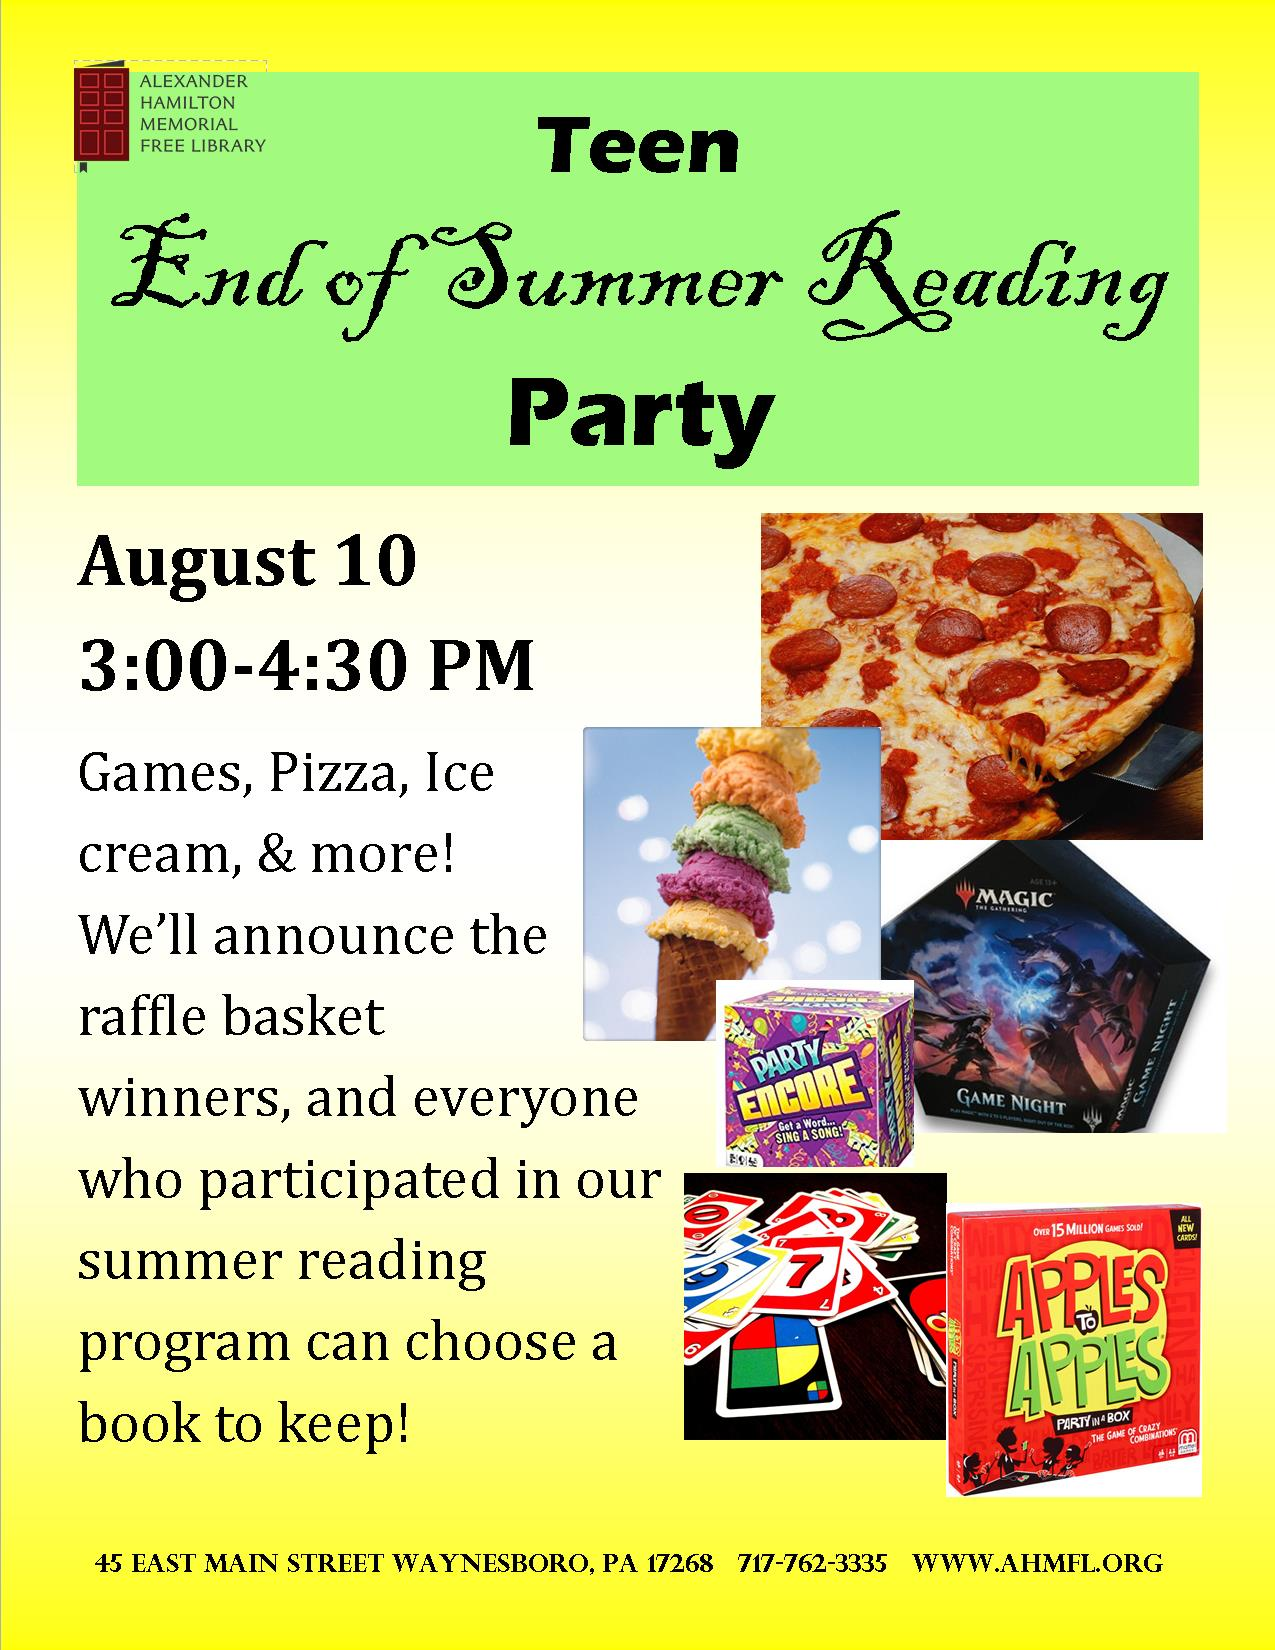 Teen End of Summer Reading Party flyer.jpg